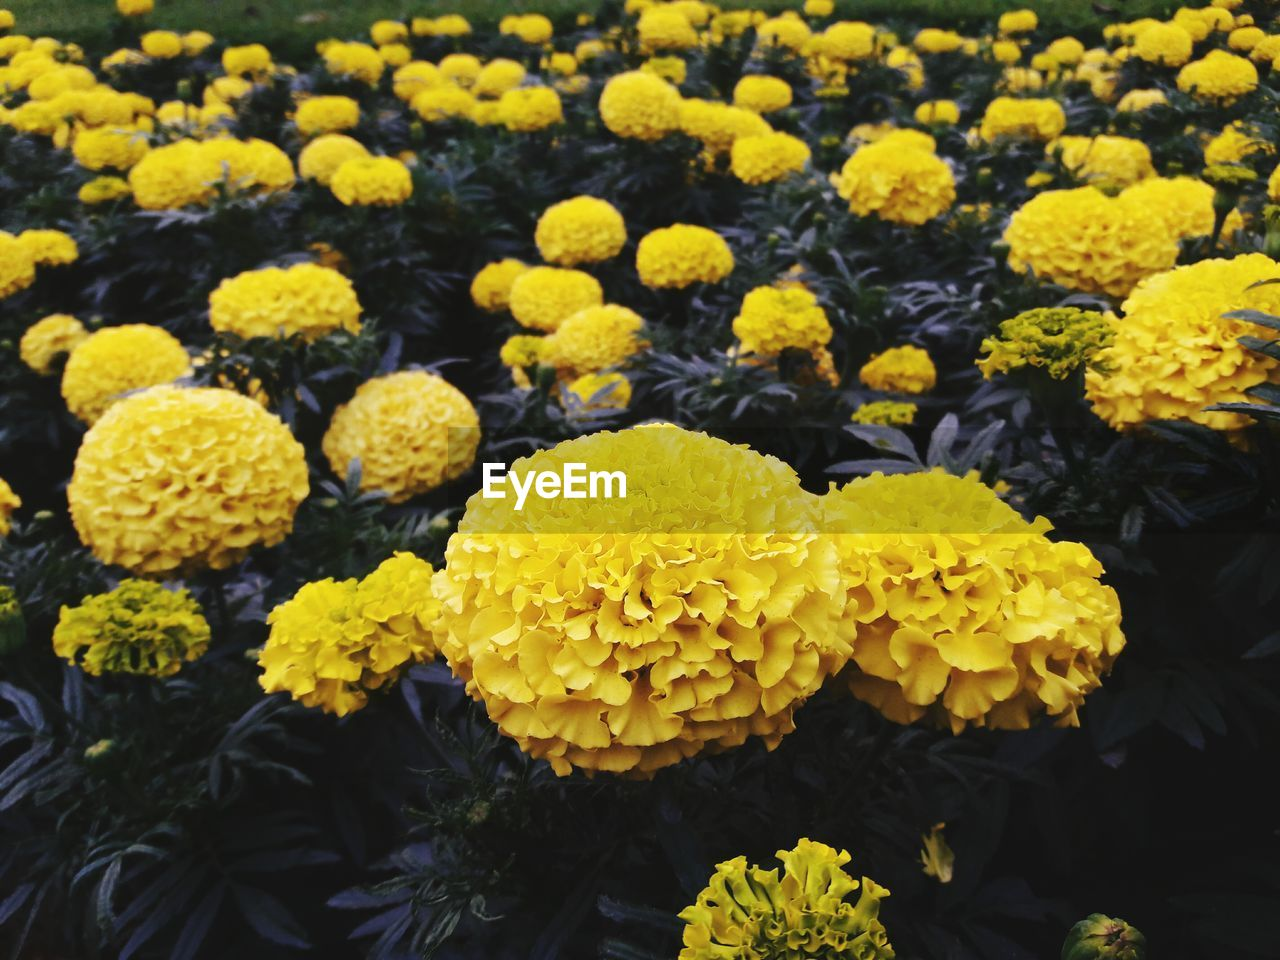 flower, flowering plant, vulnerability, yellow, fragility, growth, flower head, plant, beauty in nature, inflorescence, freshness, petal, close-up, marigold, nature, day, no people, botany, outdoors, high angle view, softness, flowerbed